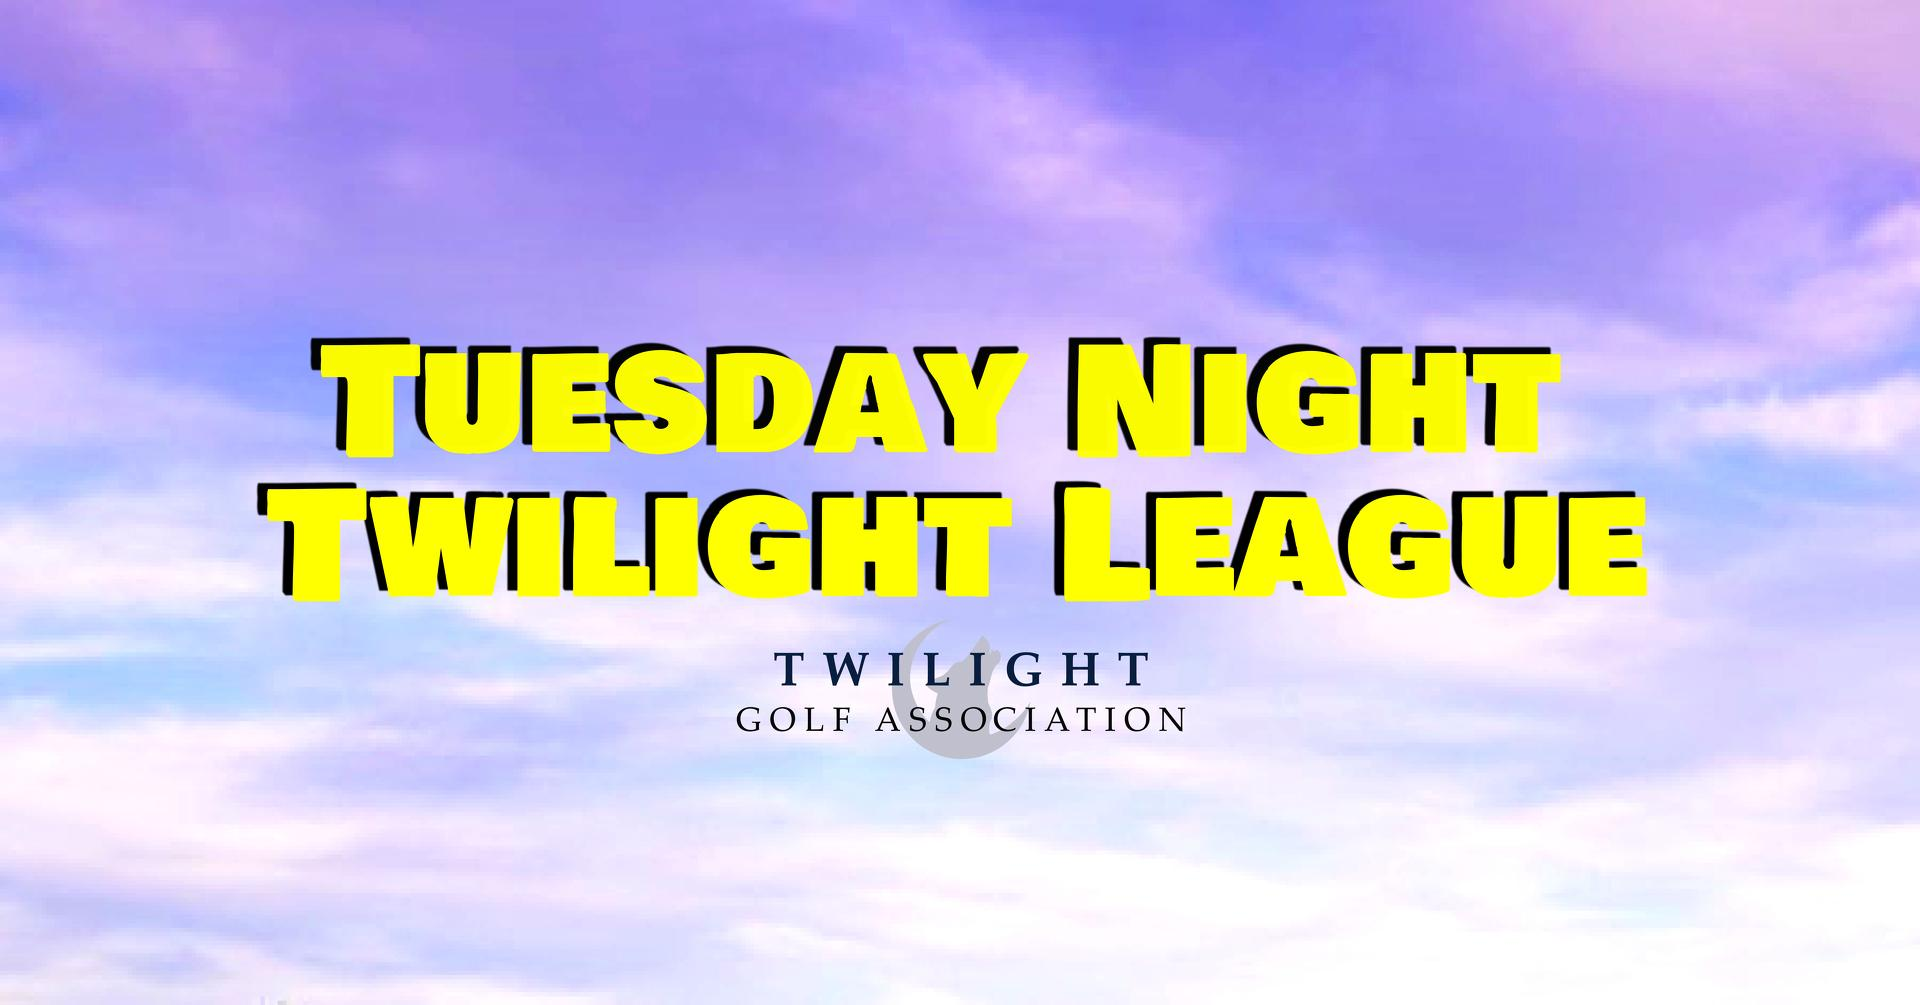 Tuesday Twilight League at Heritage Creek Golf Club